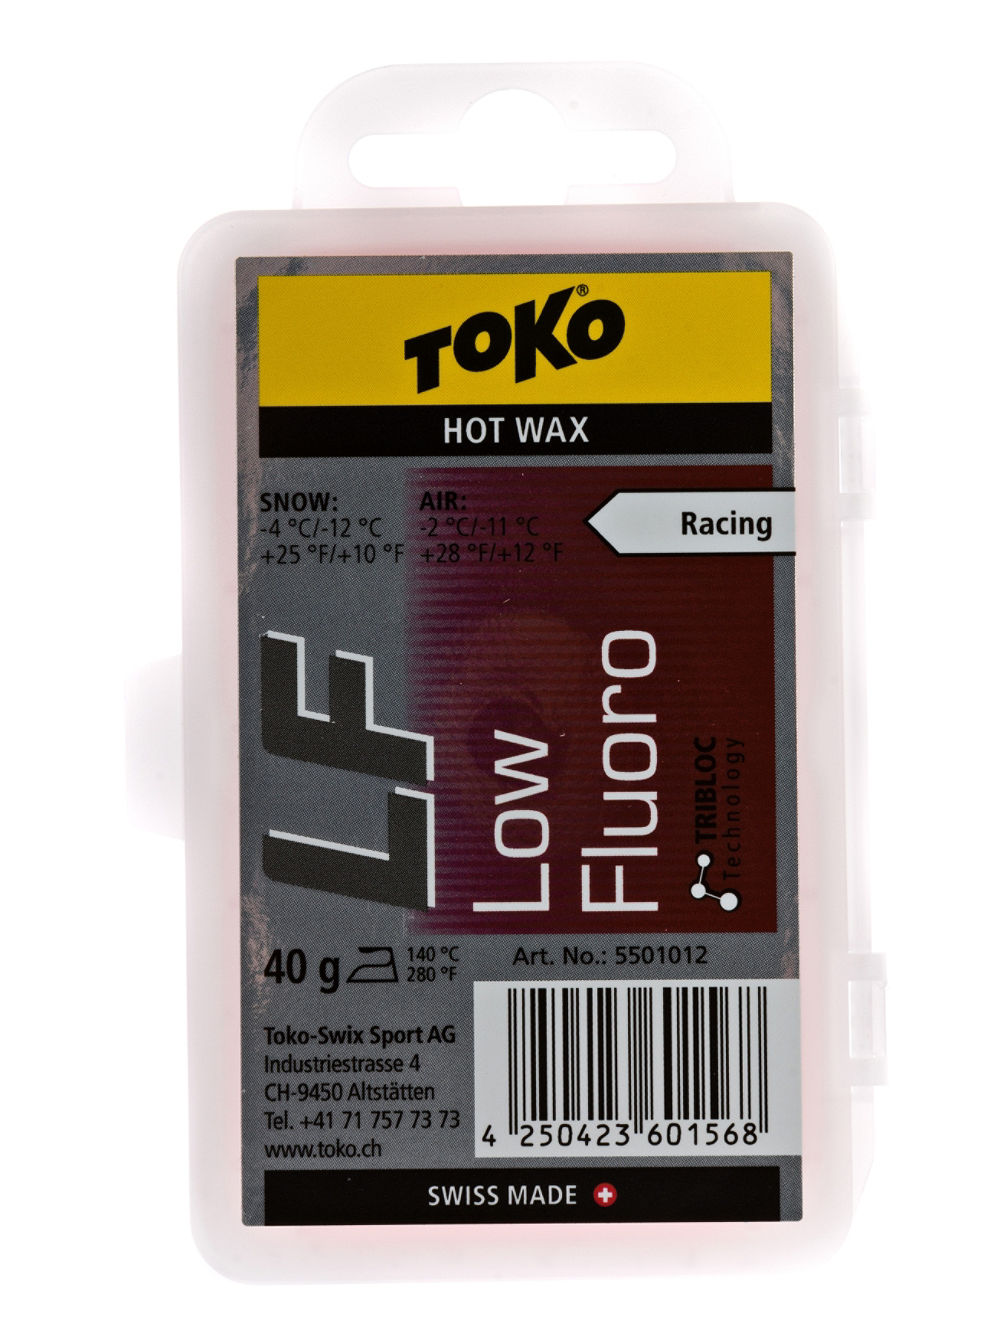 toko-lf-hot-wax-red-40g